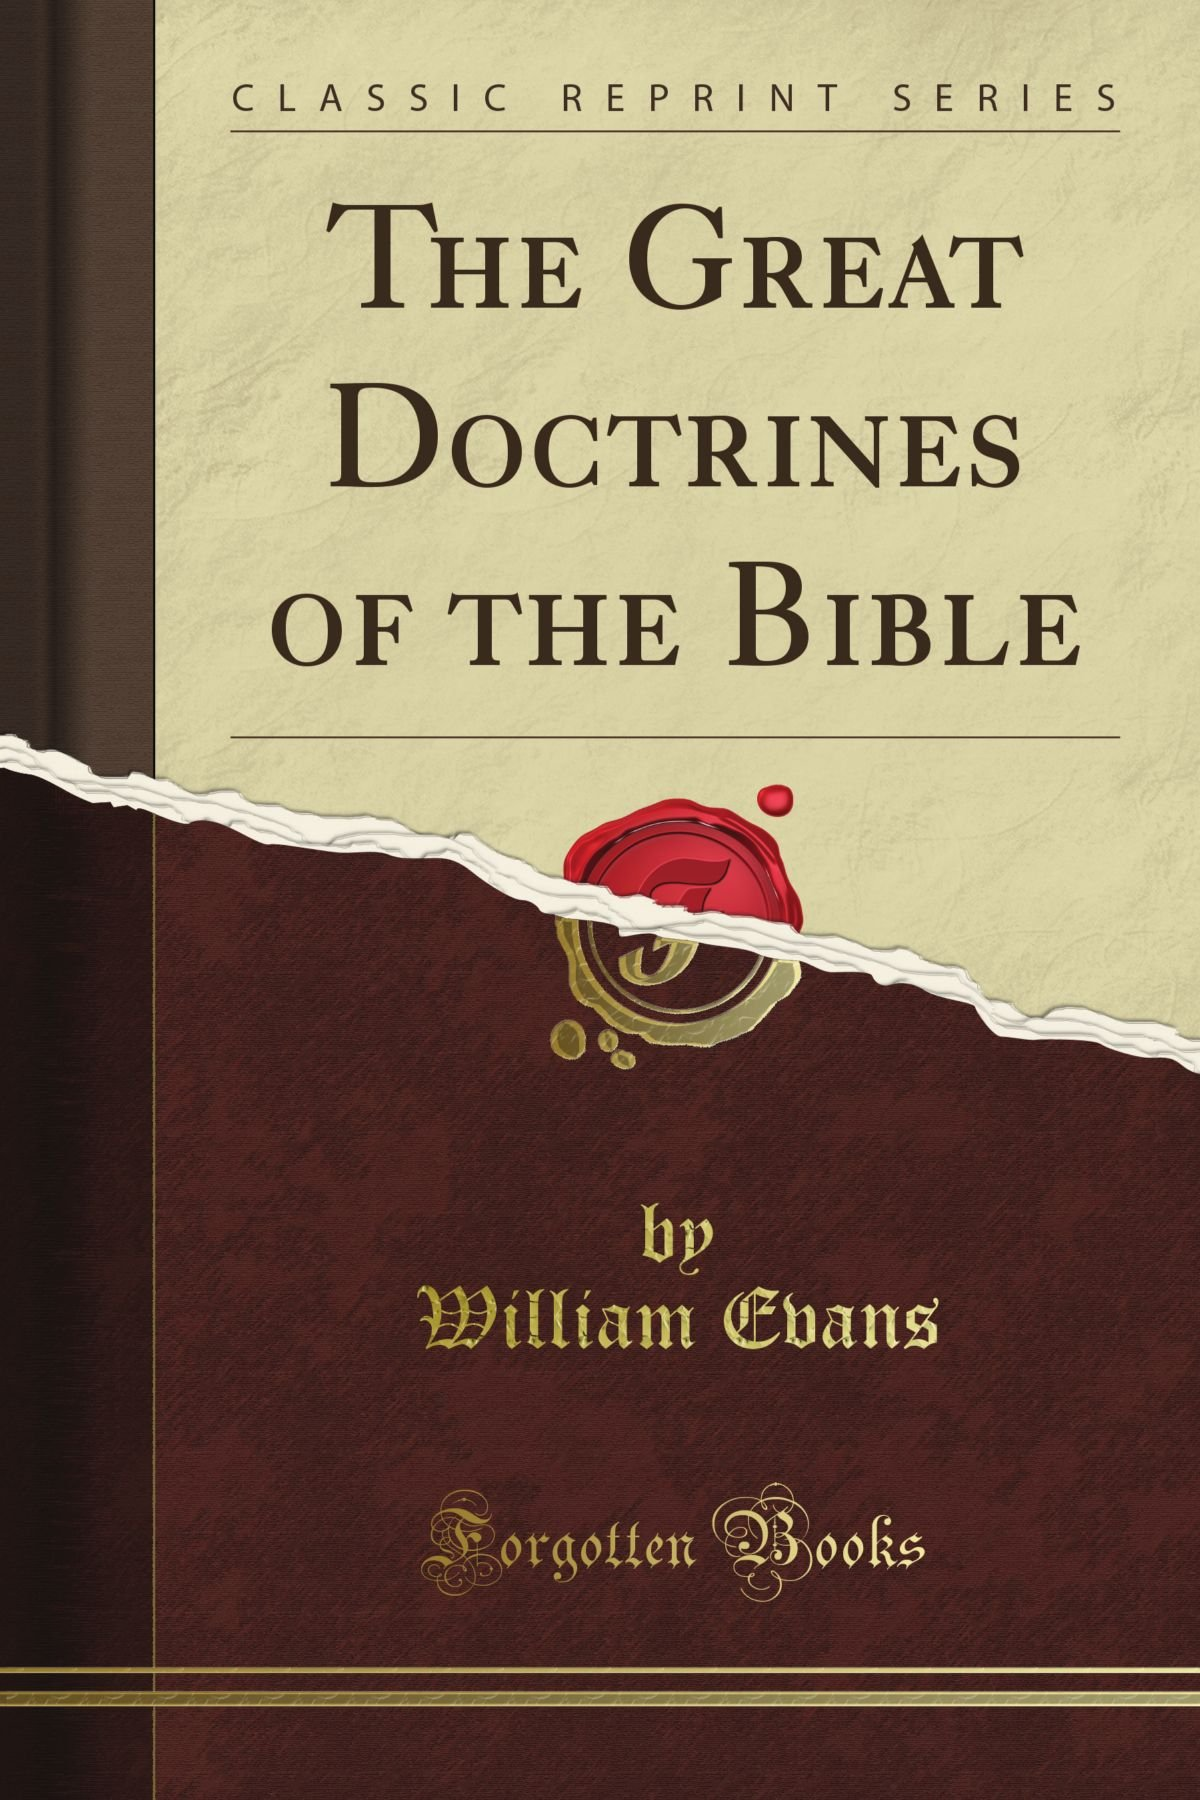 The Great Doctrines of the Bible (Classic Reprint): William Evans:  9781440056710: Amazon.com: Books